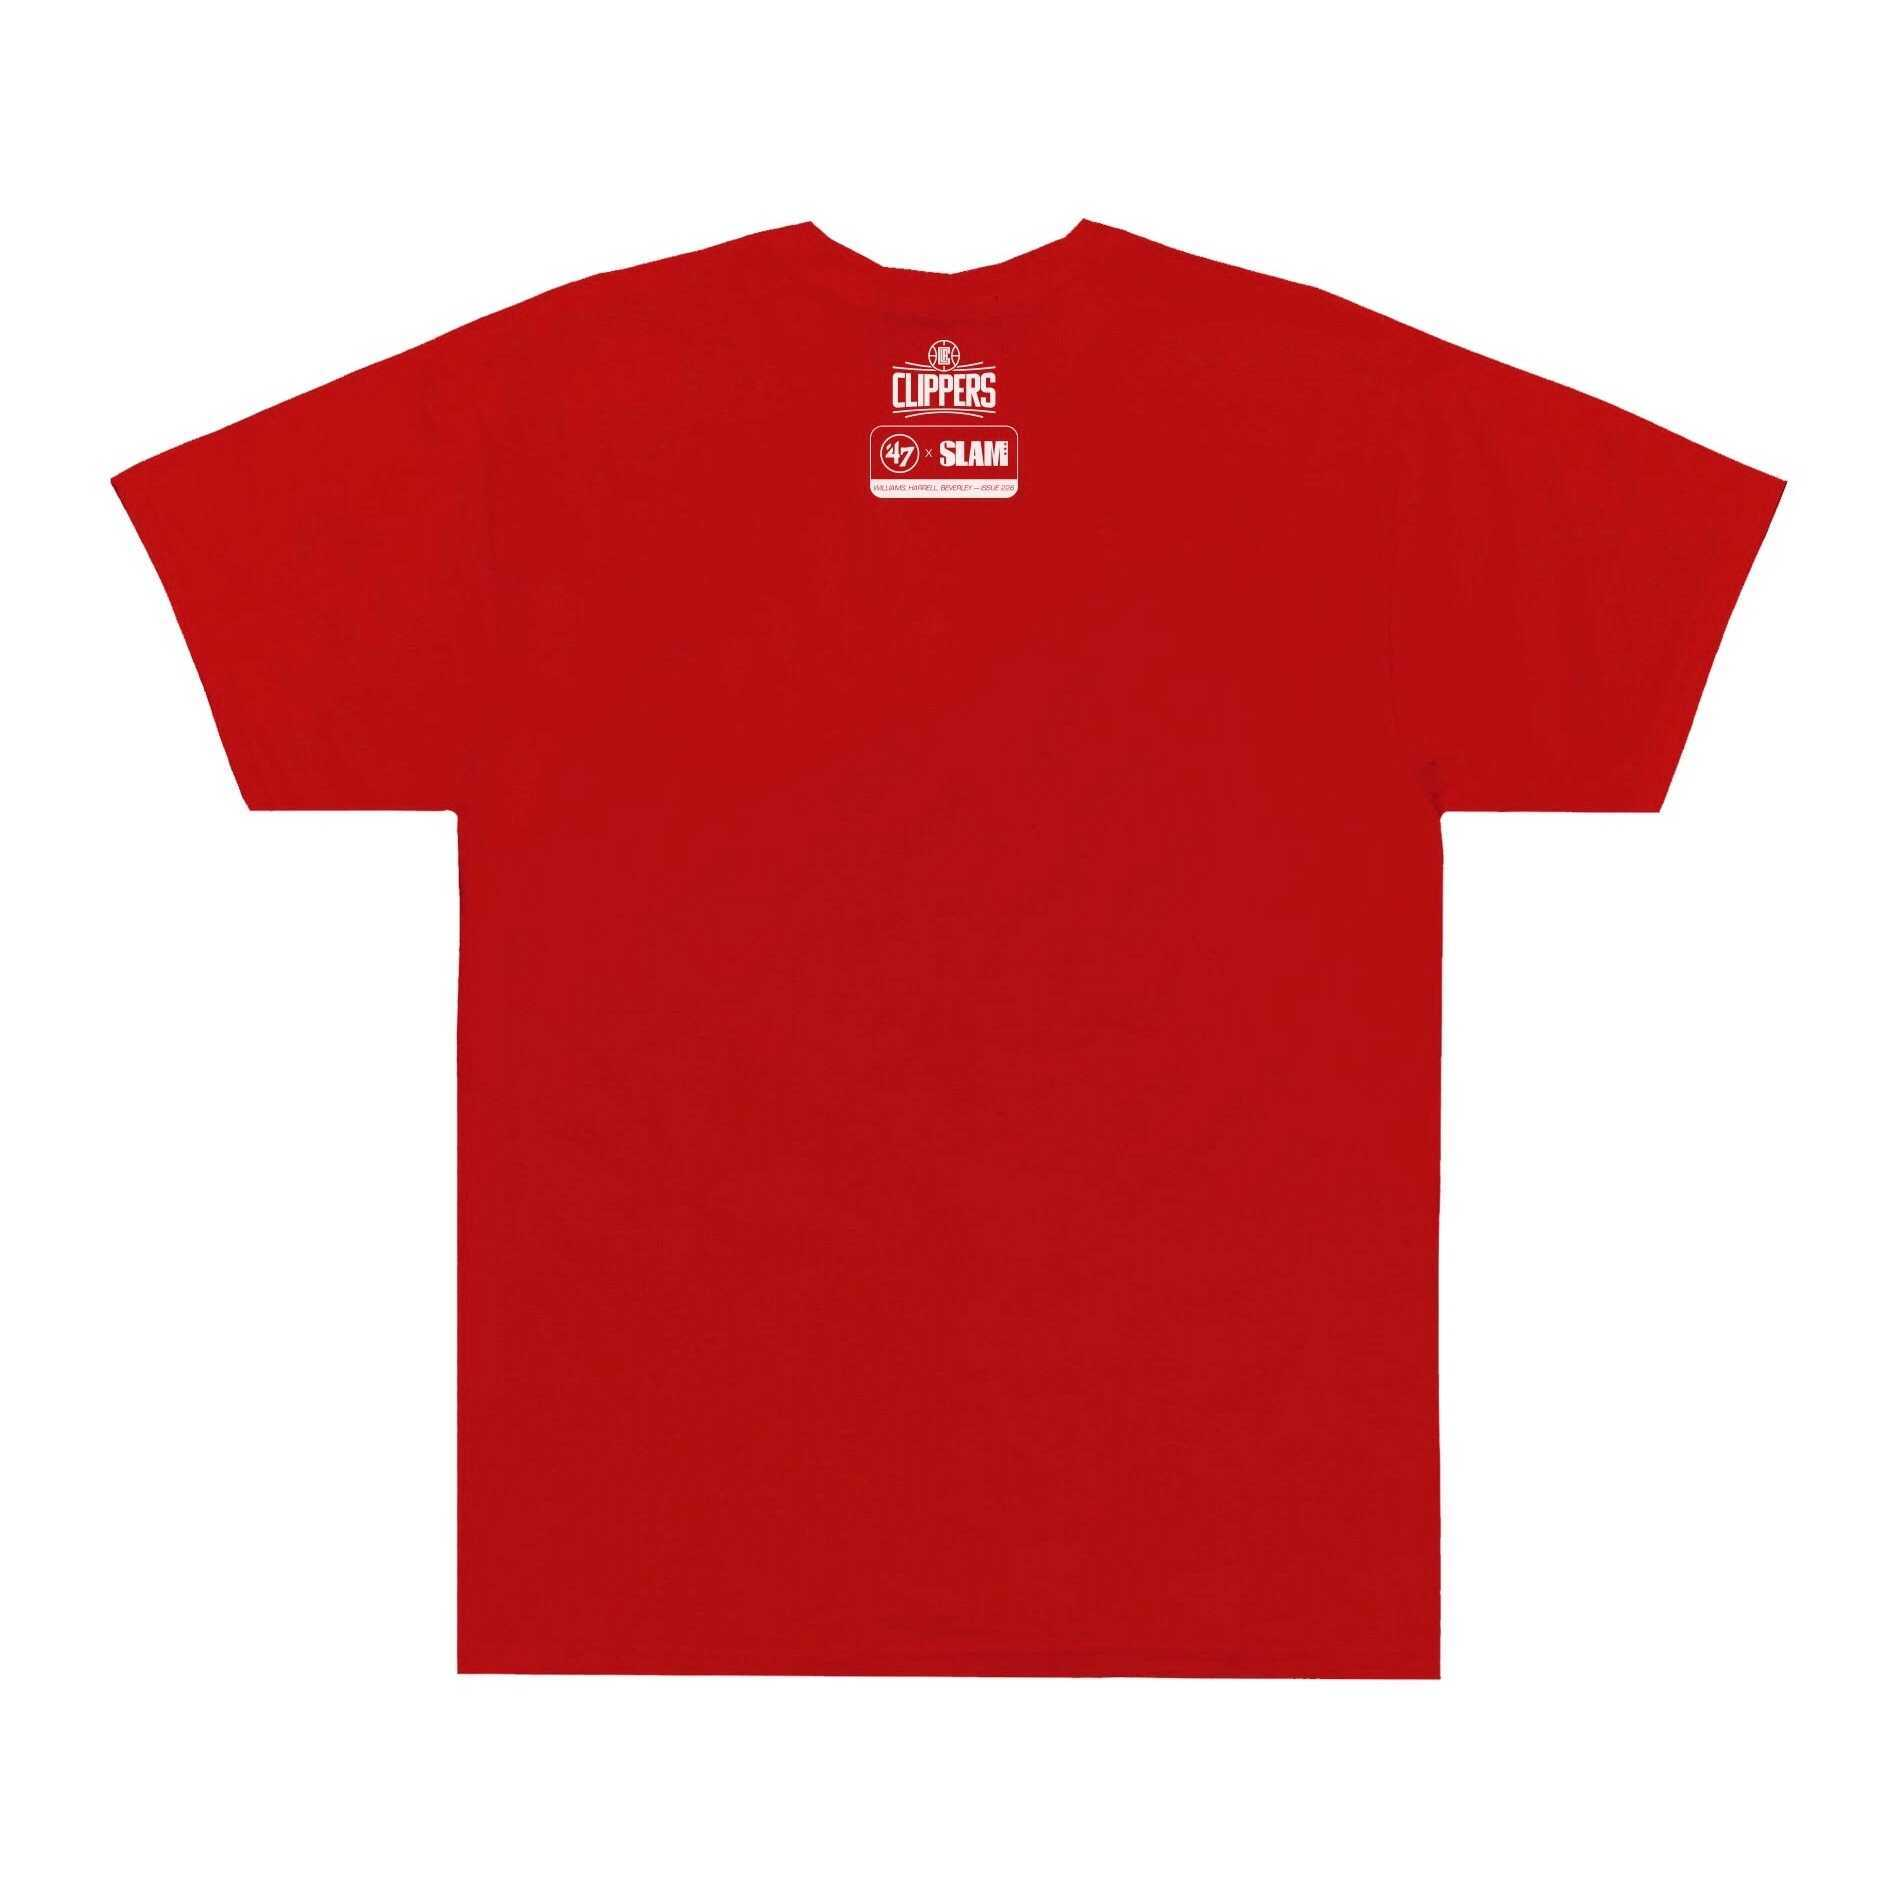 SLAM Cover Tee - Clippers(Pat,Trez,Lou) - SLAM